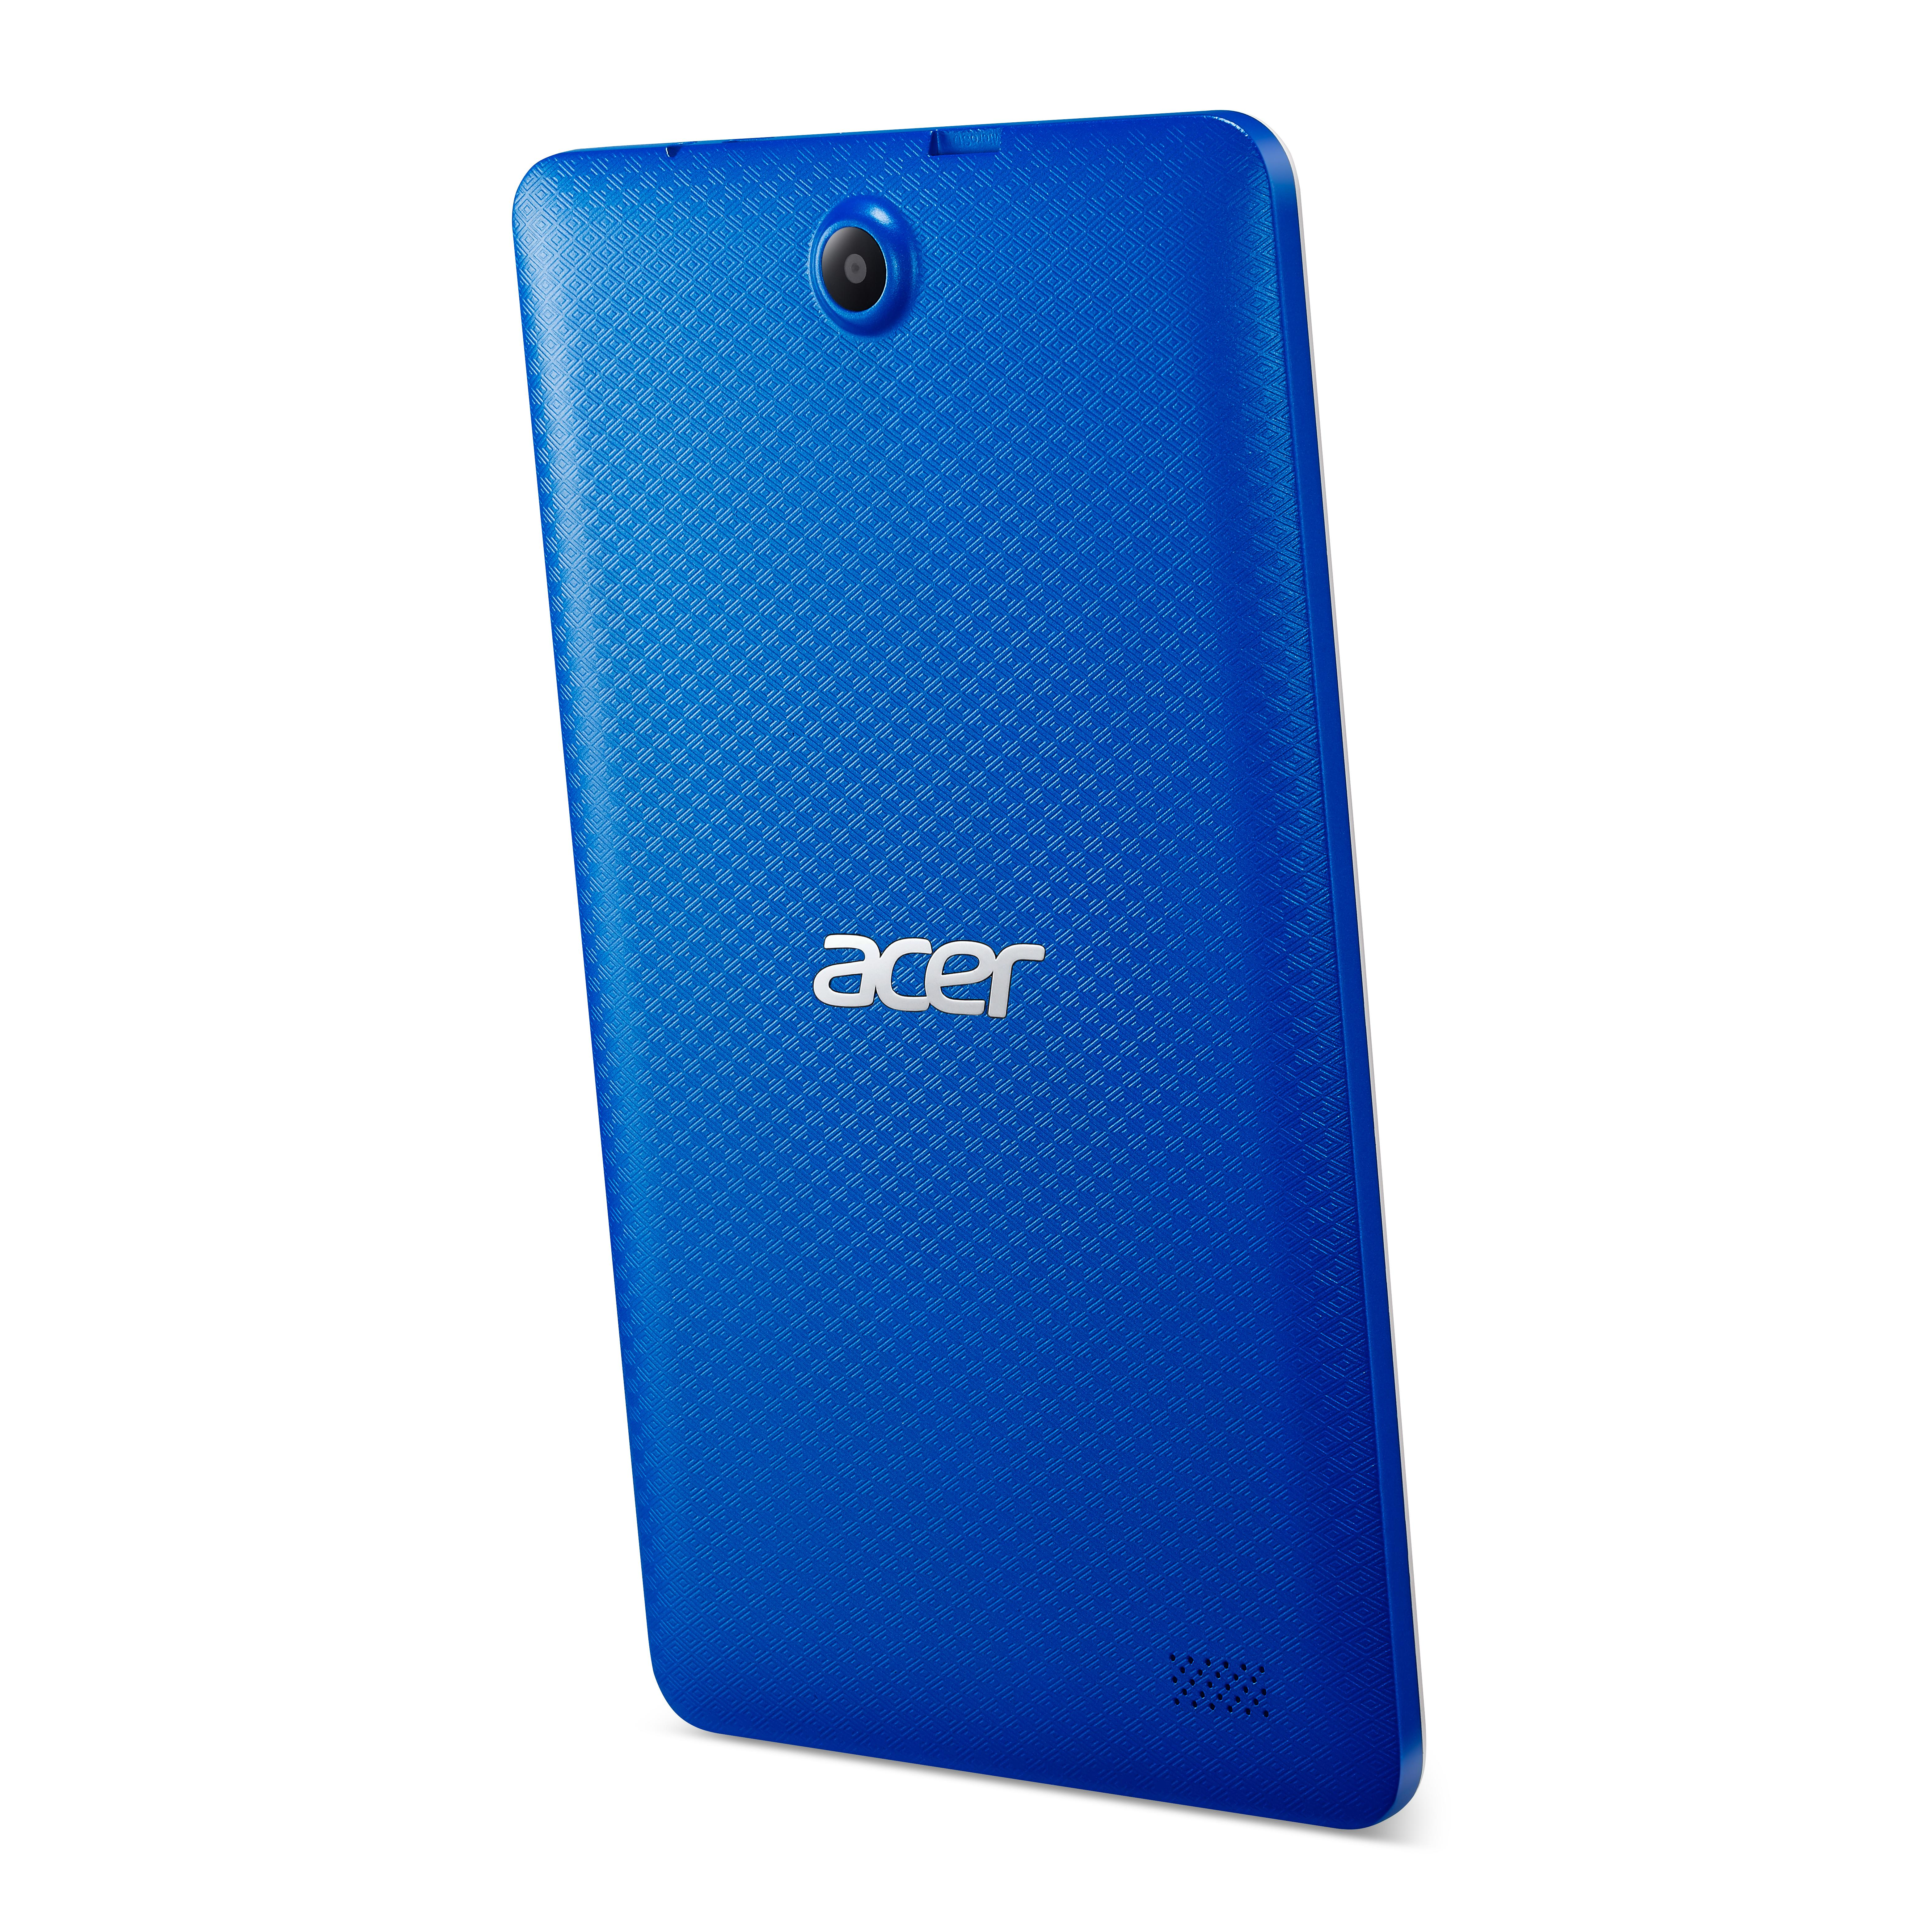 "Acer Iconia One - 8"" 16 Go - Wifi - Bleu"